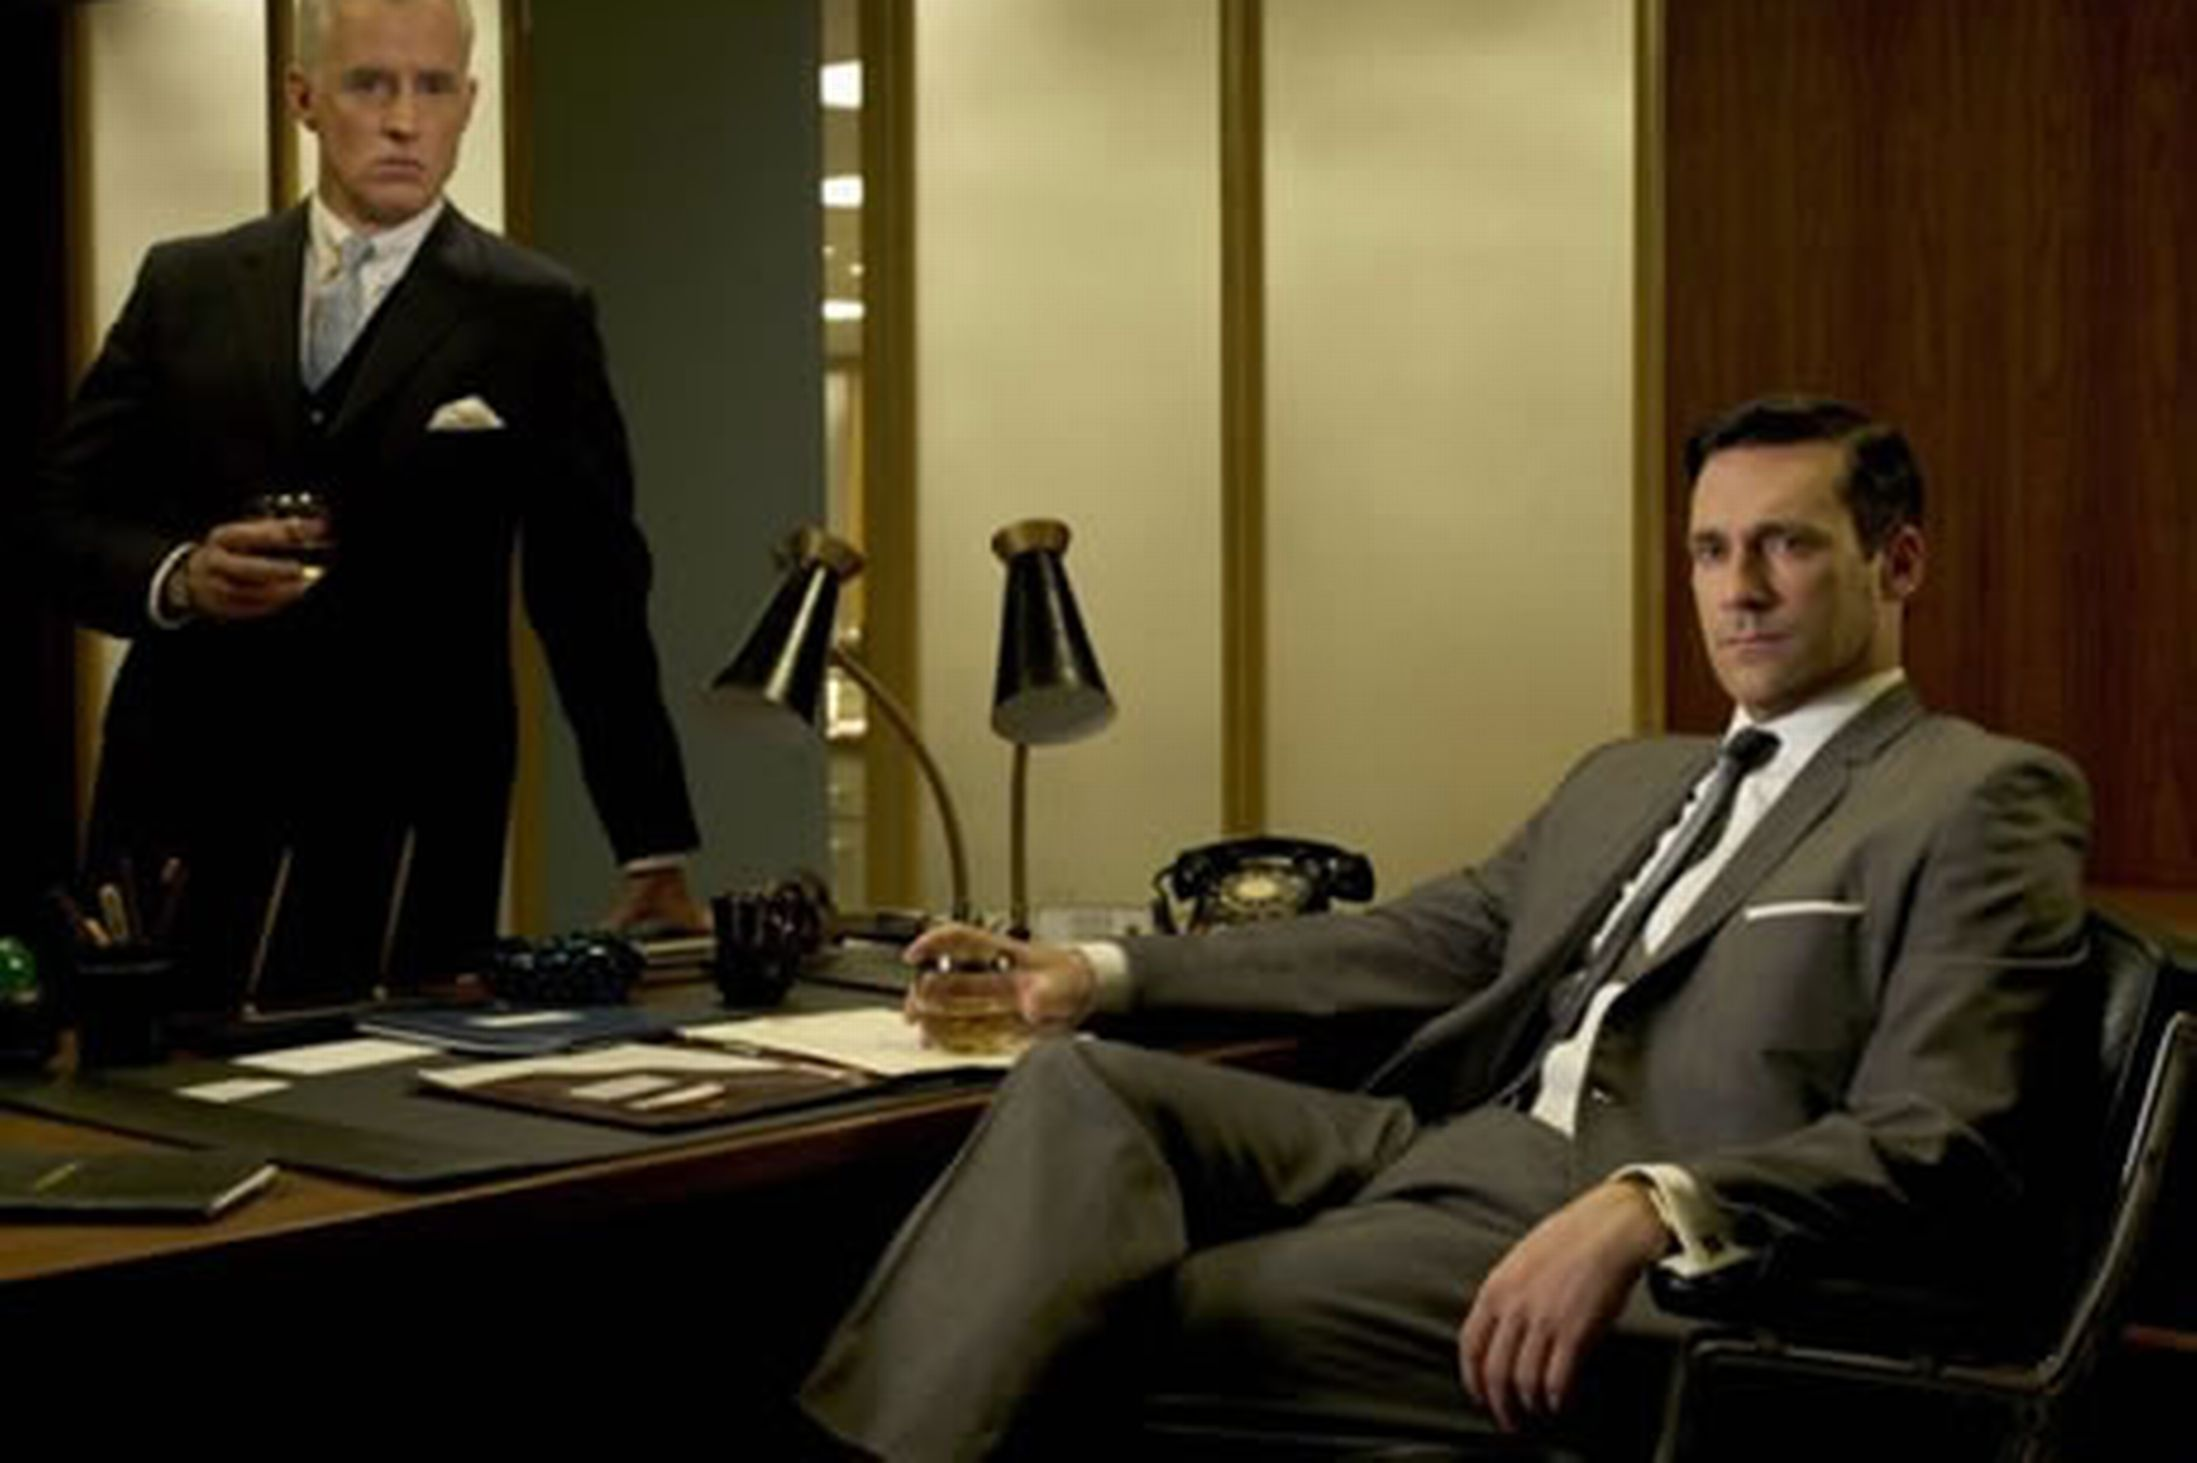 mad-men-image-1-902730010-925918